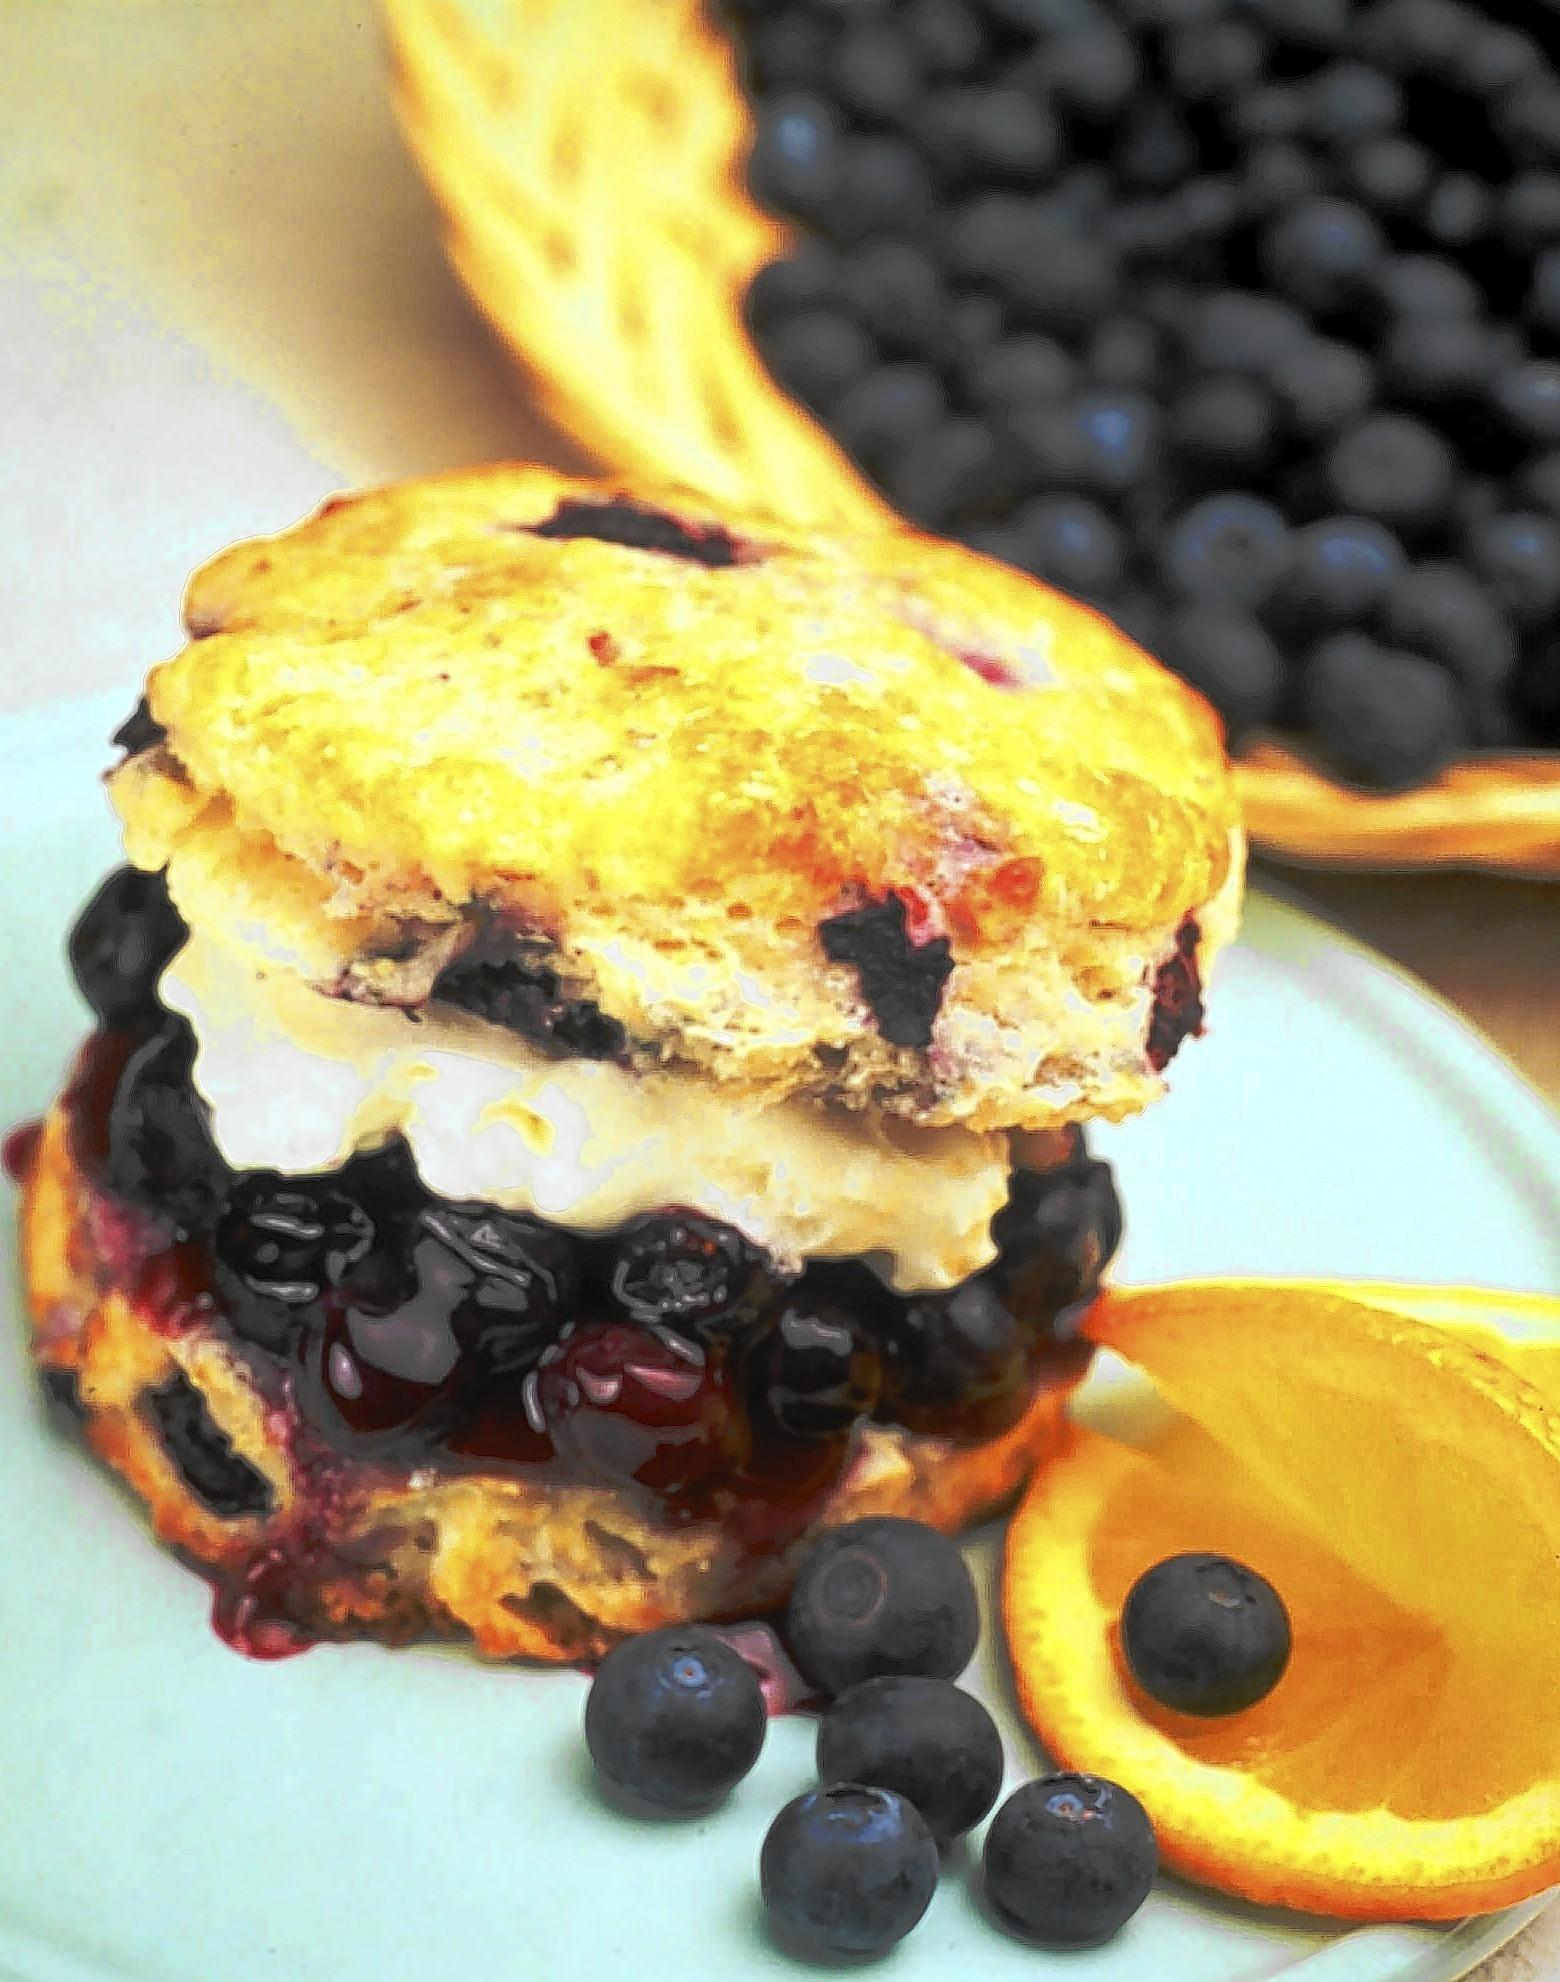 Look for recipes with blueberries at orlandosentinel.com/thedish